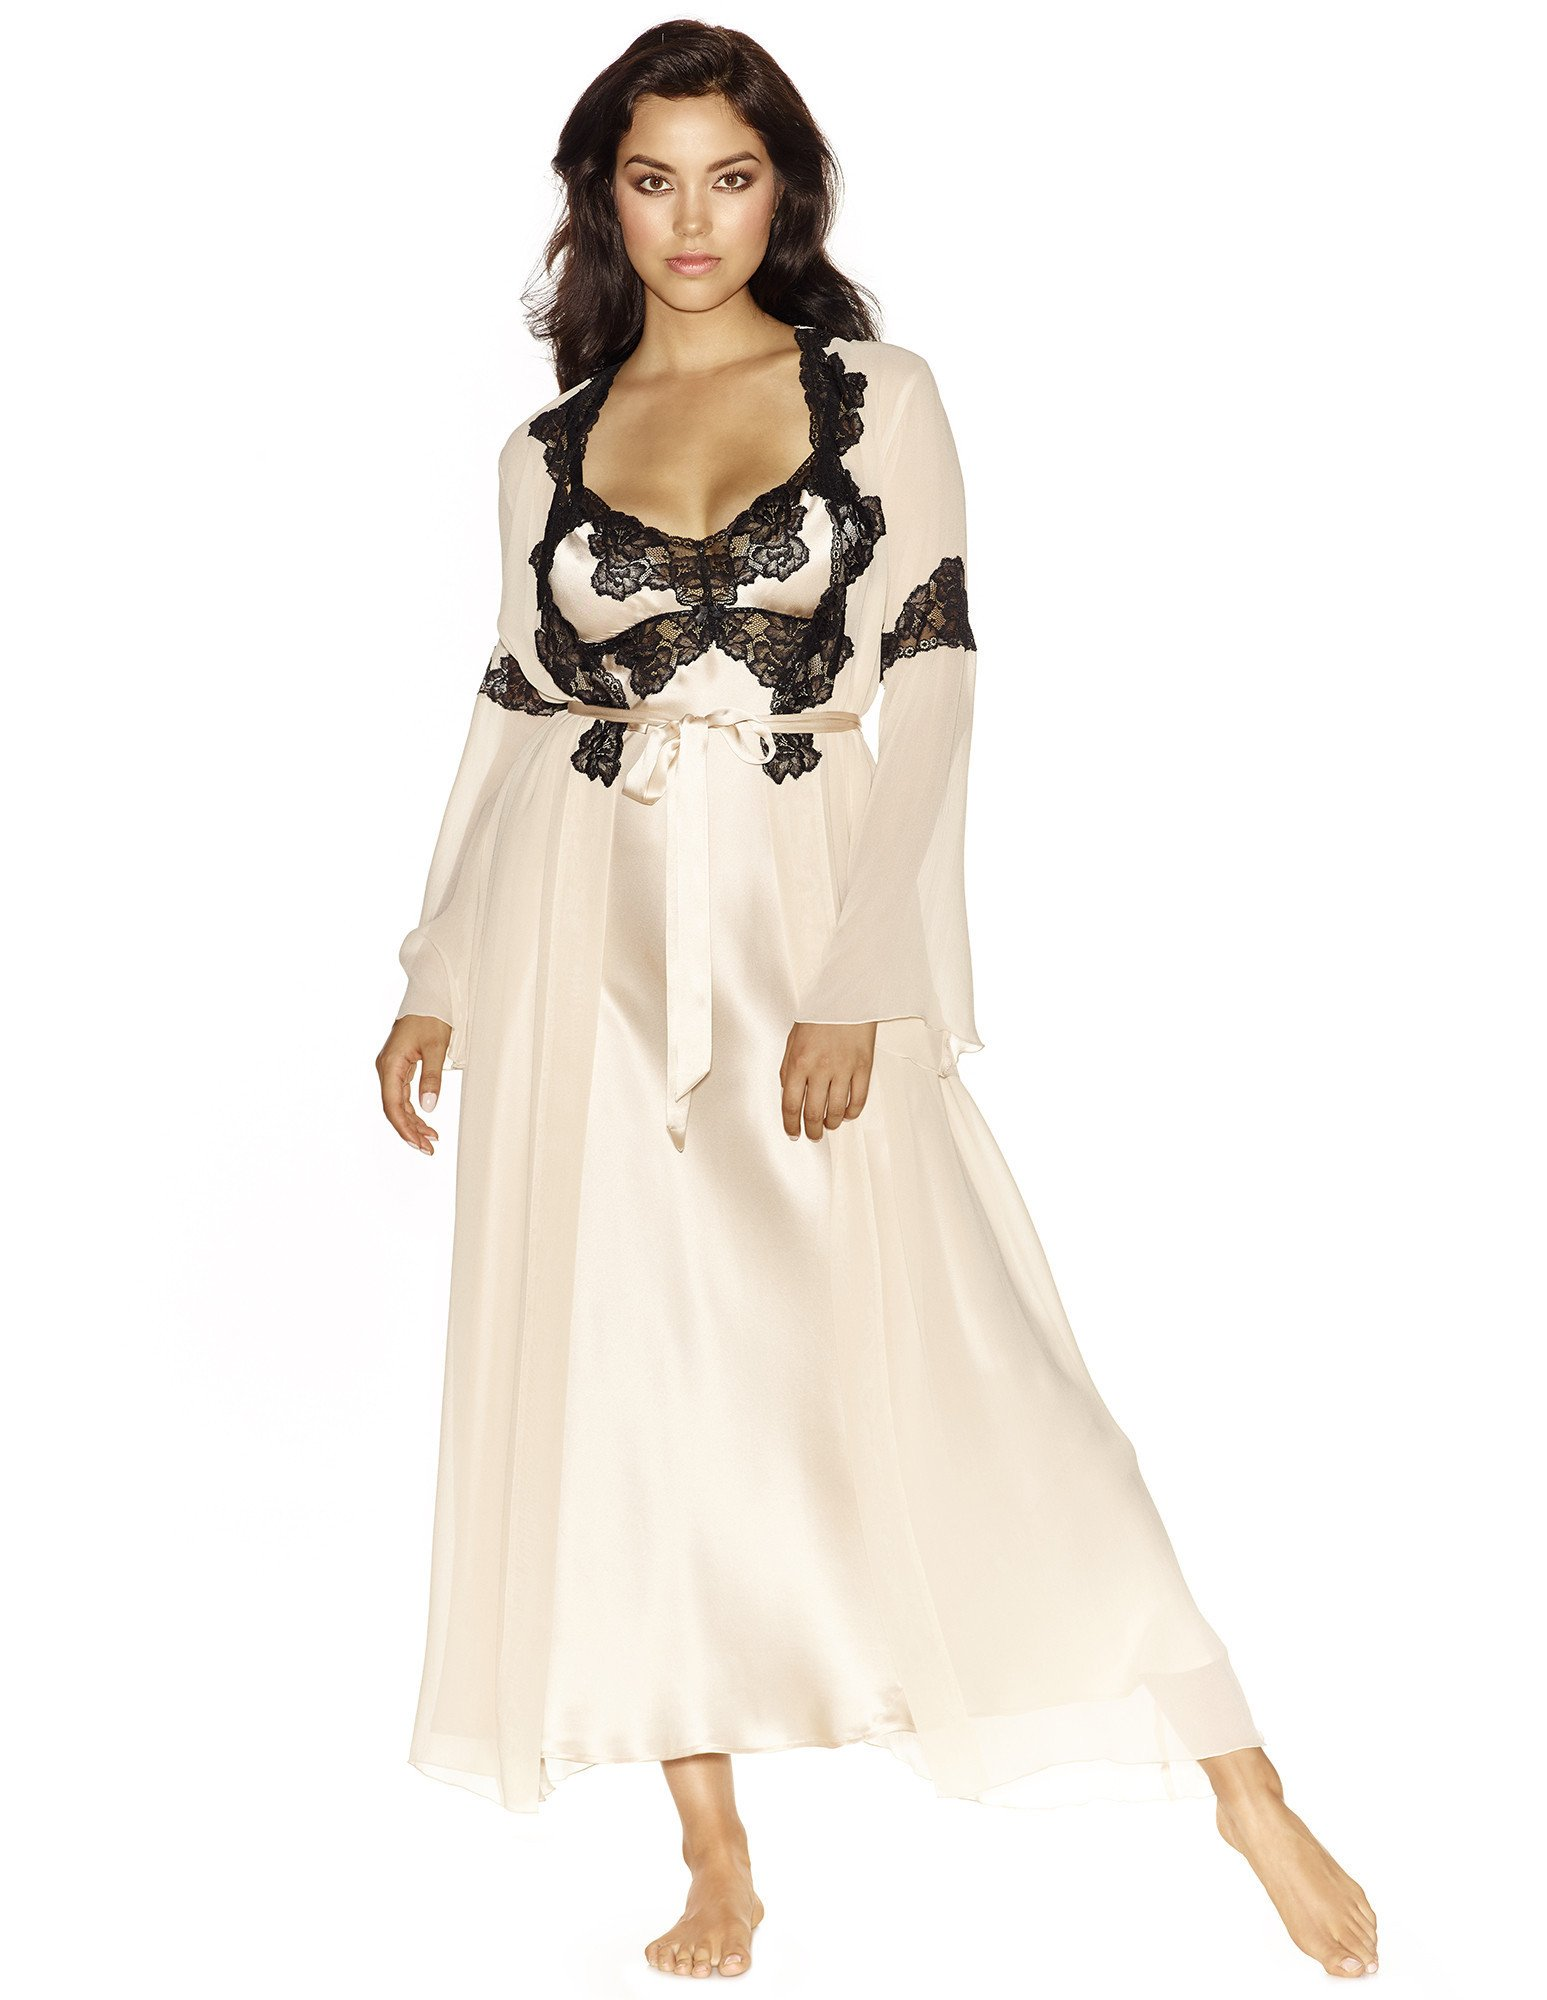 25. Charming Long Chiffon Robe $250. S-L. Champagne (shown), all black, or all ivory.